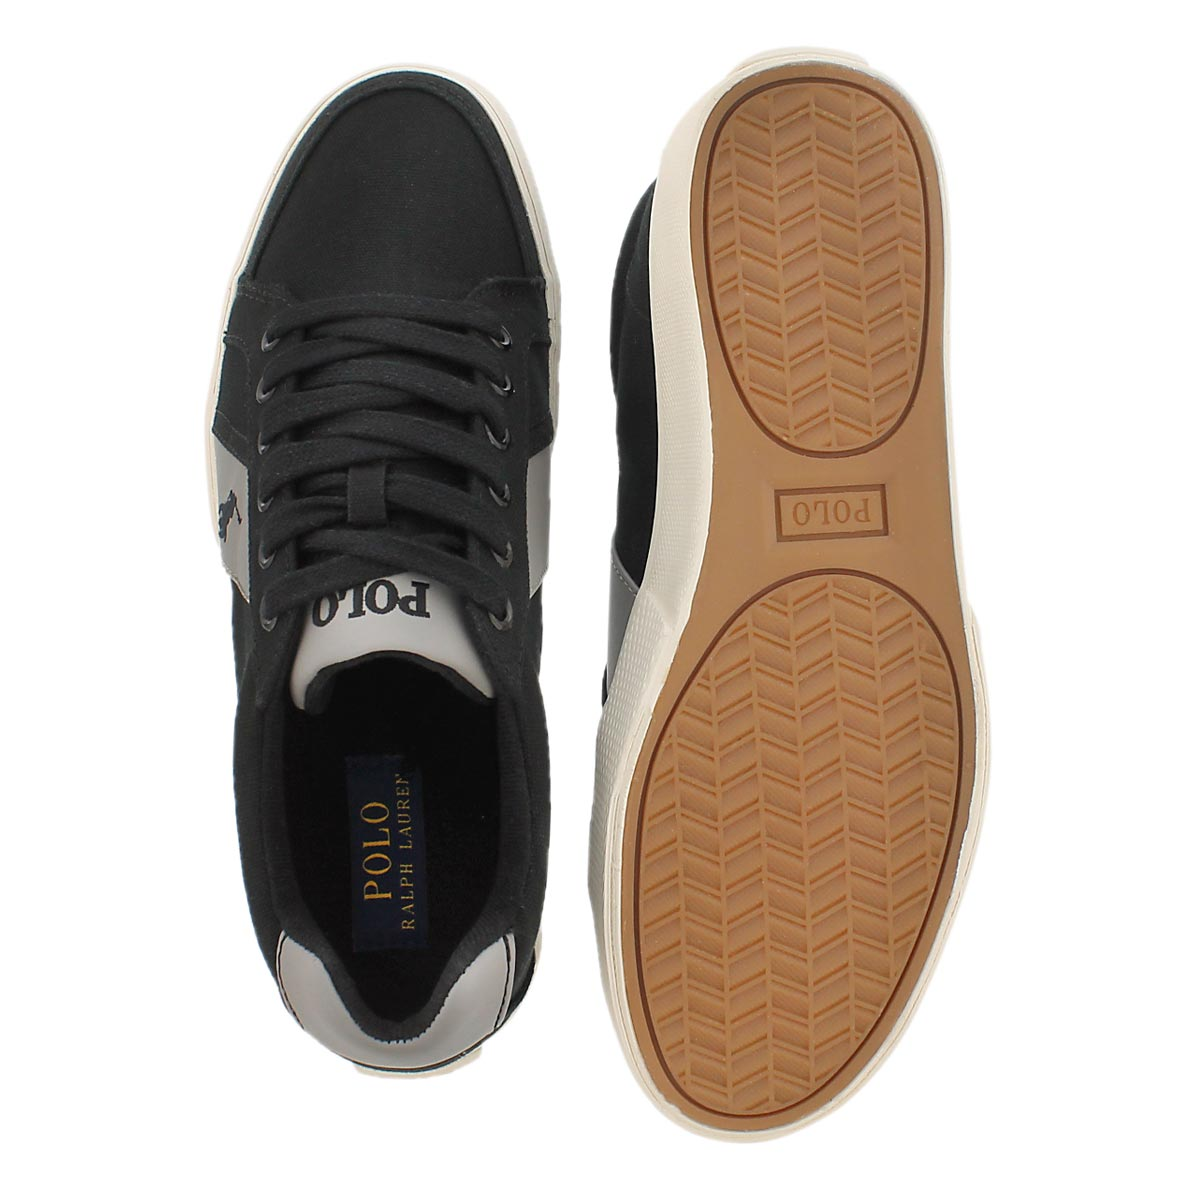 Mns Hugh blk/gry canvas fashion sneaker